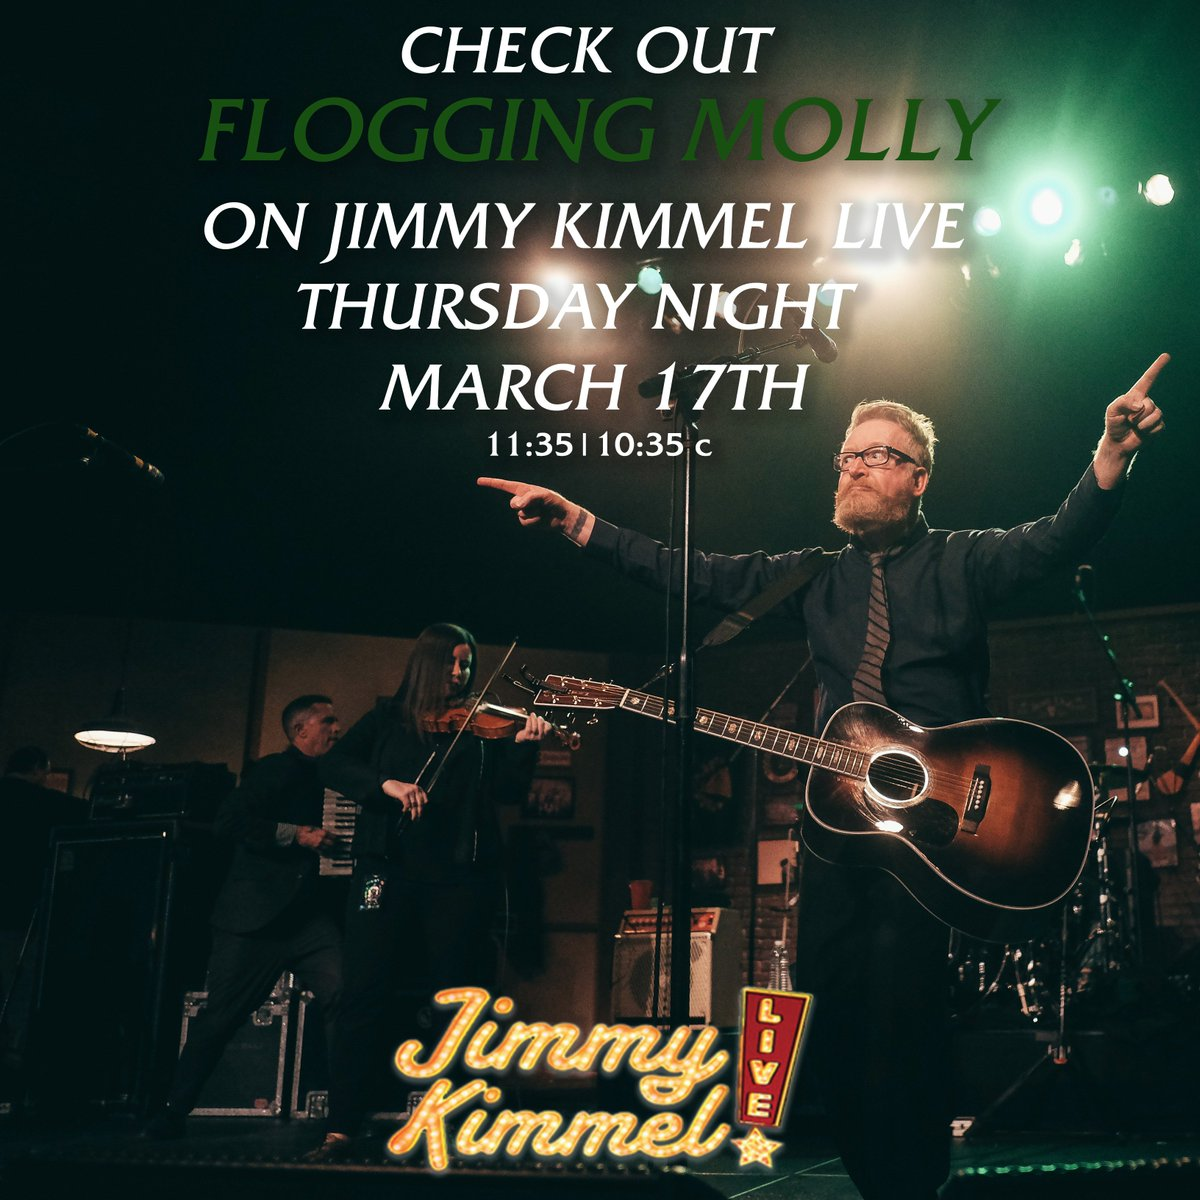 .@JimmyKimmelLive....you ready for us on #StPatricksDay? See us perform our new song 'The Hand Of John L Sullivan' https://t.co/RDTrKkrgPr